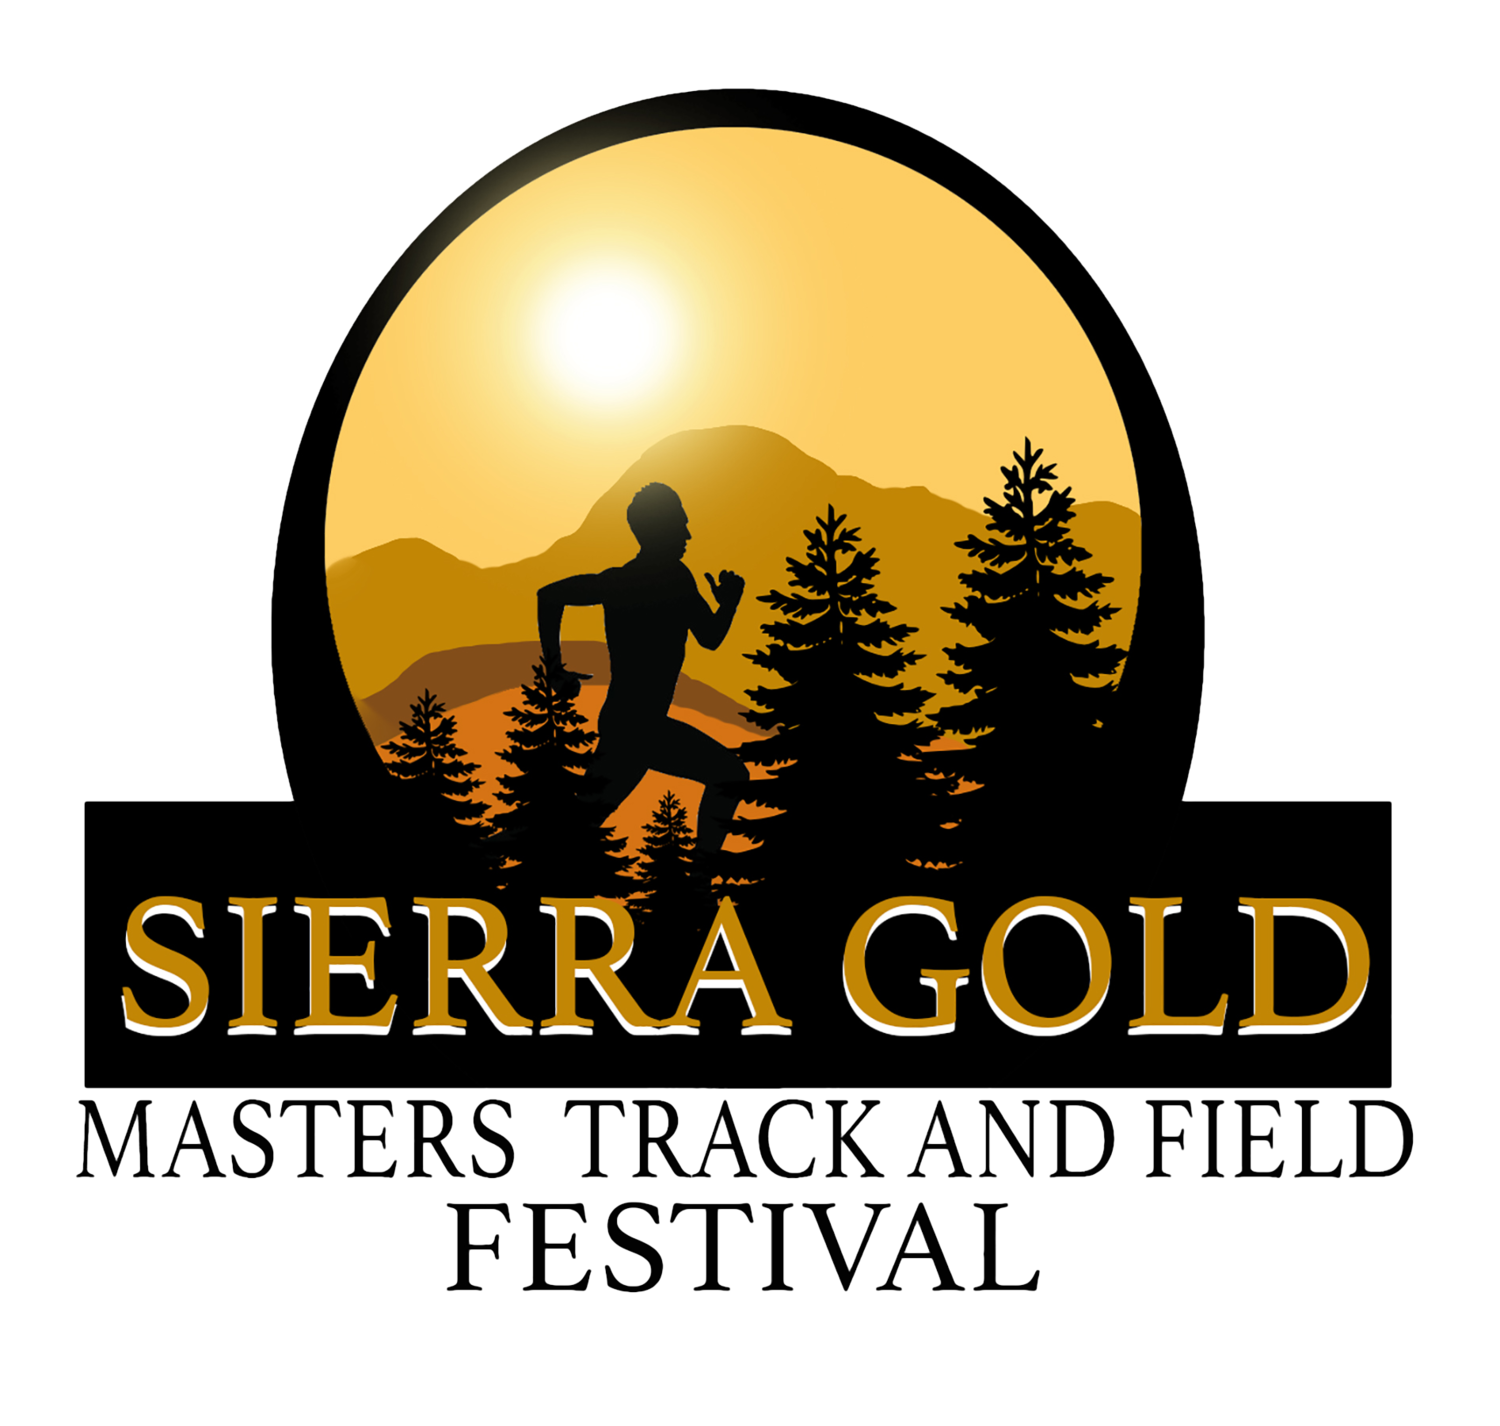 SIERRA GOLD MASTERS TRACK AND FIELD FESTIVAL